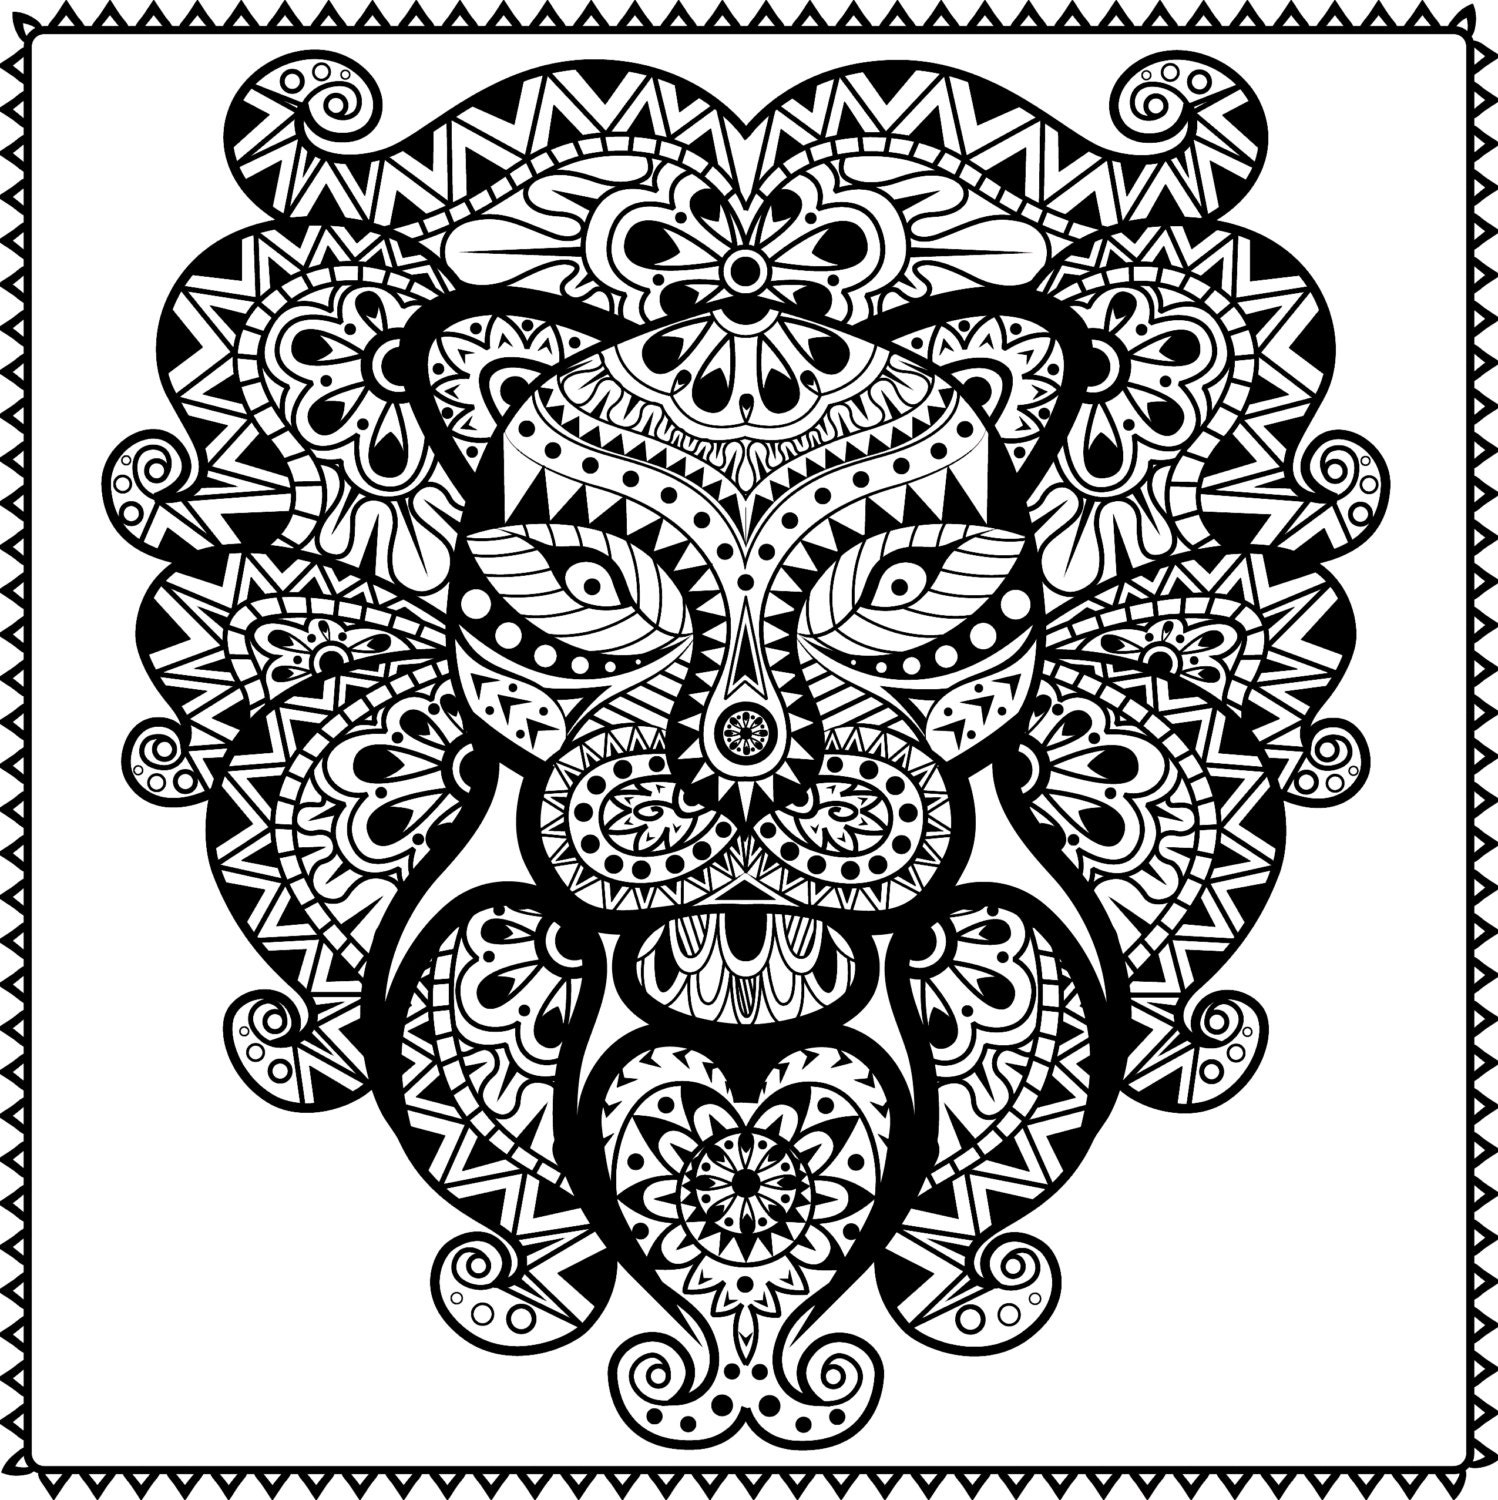 owl with tribal pattern coloring page also 67620a067449d273e5ee090b6d99b298  viking tattoos adult coloring besides  additionally  besides secret garden adult coloring page tree 370x330 likewise  further  also  as well dcra7yMoi as well  moreover . on tribal tree coloring pages for adults